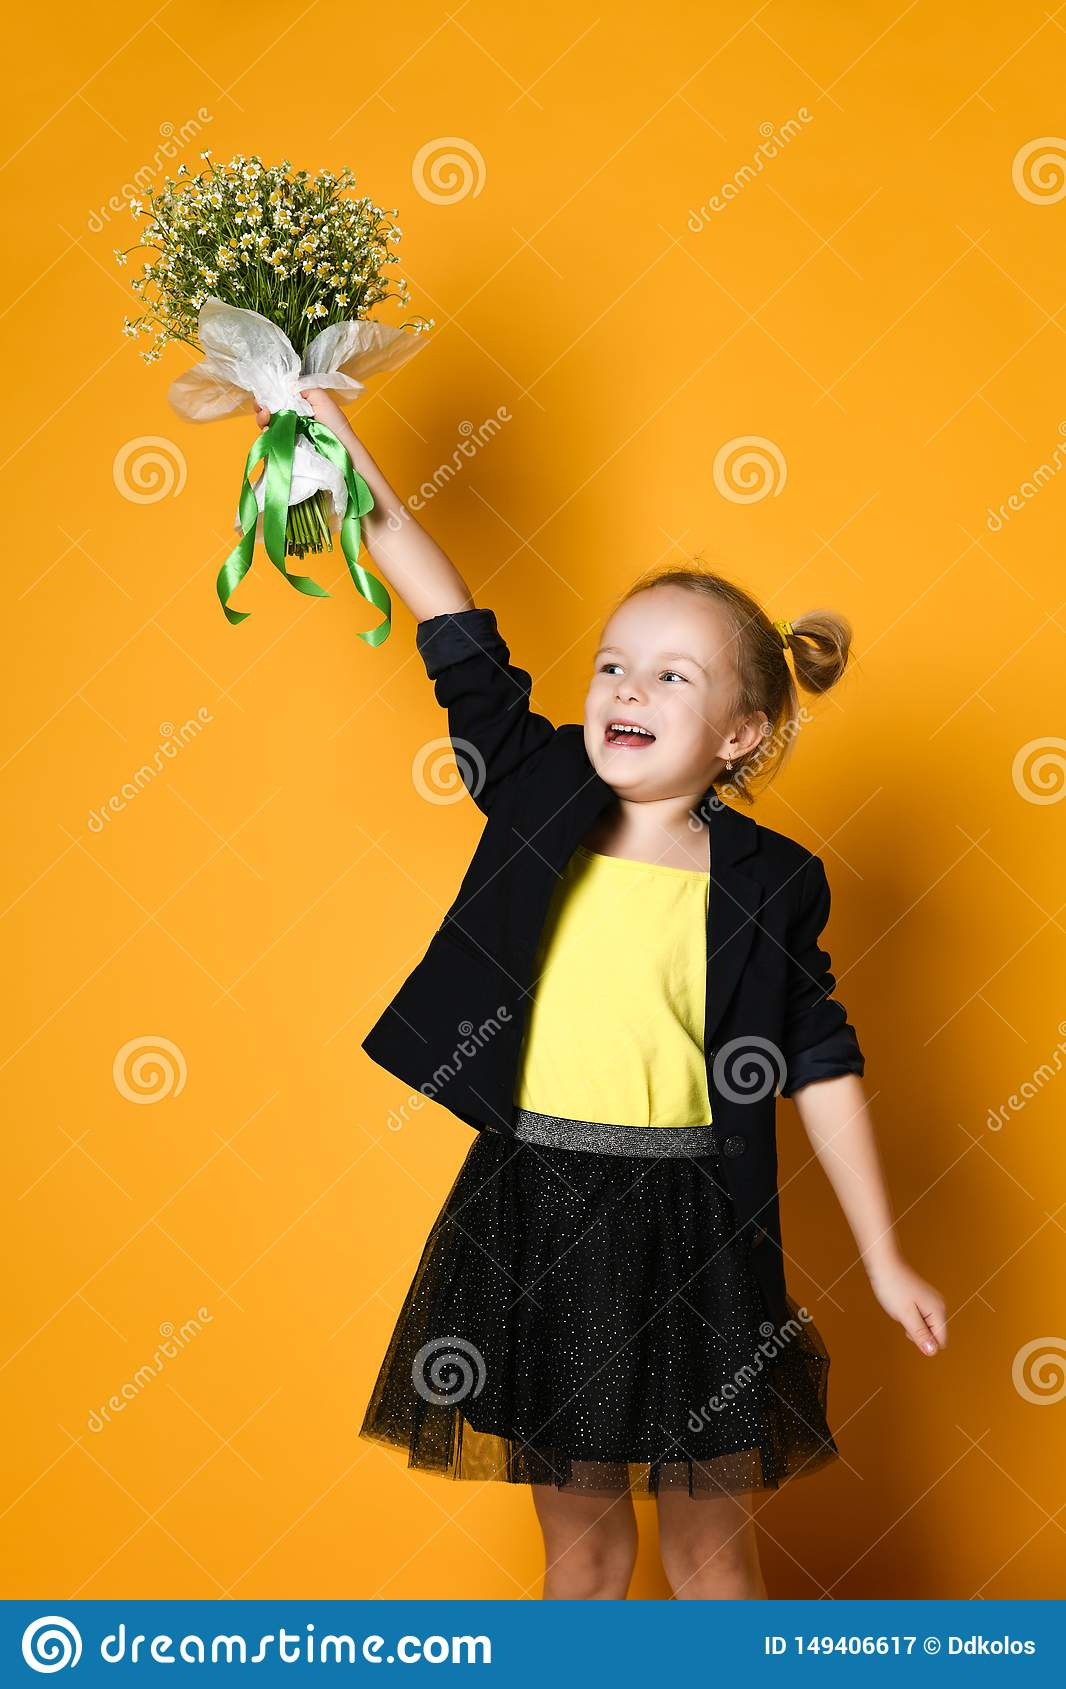 Little cute 5-year-old girl holds a large bouquet of daisies